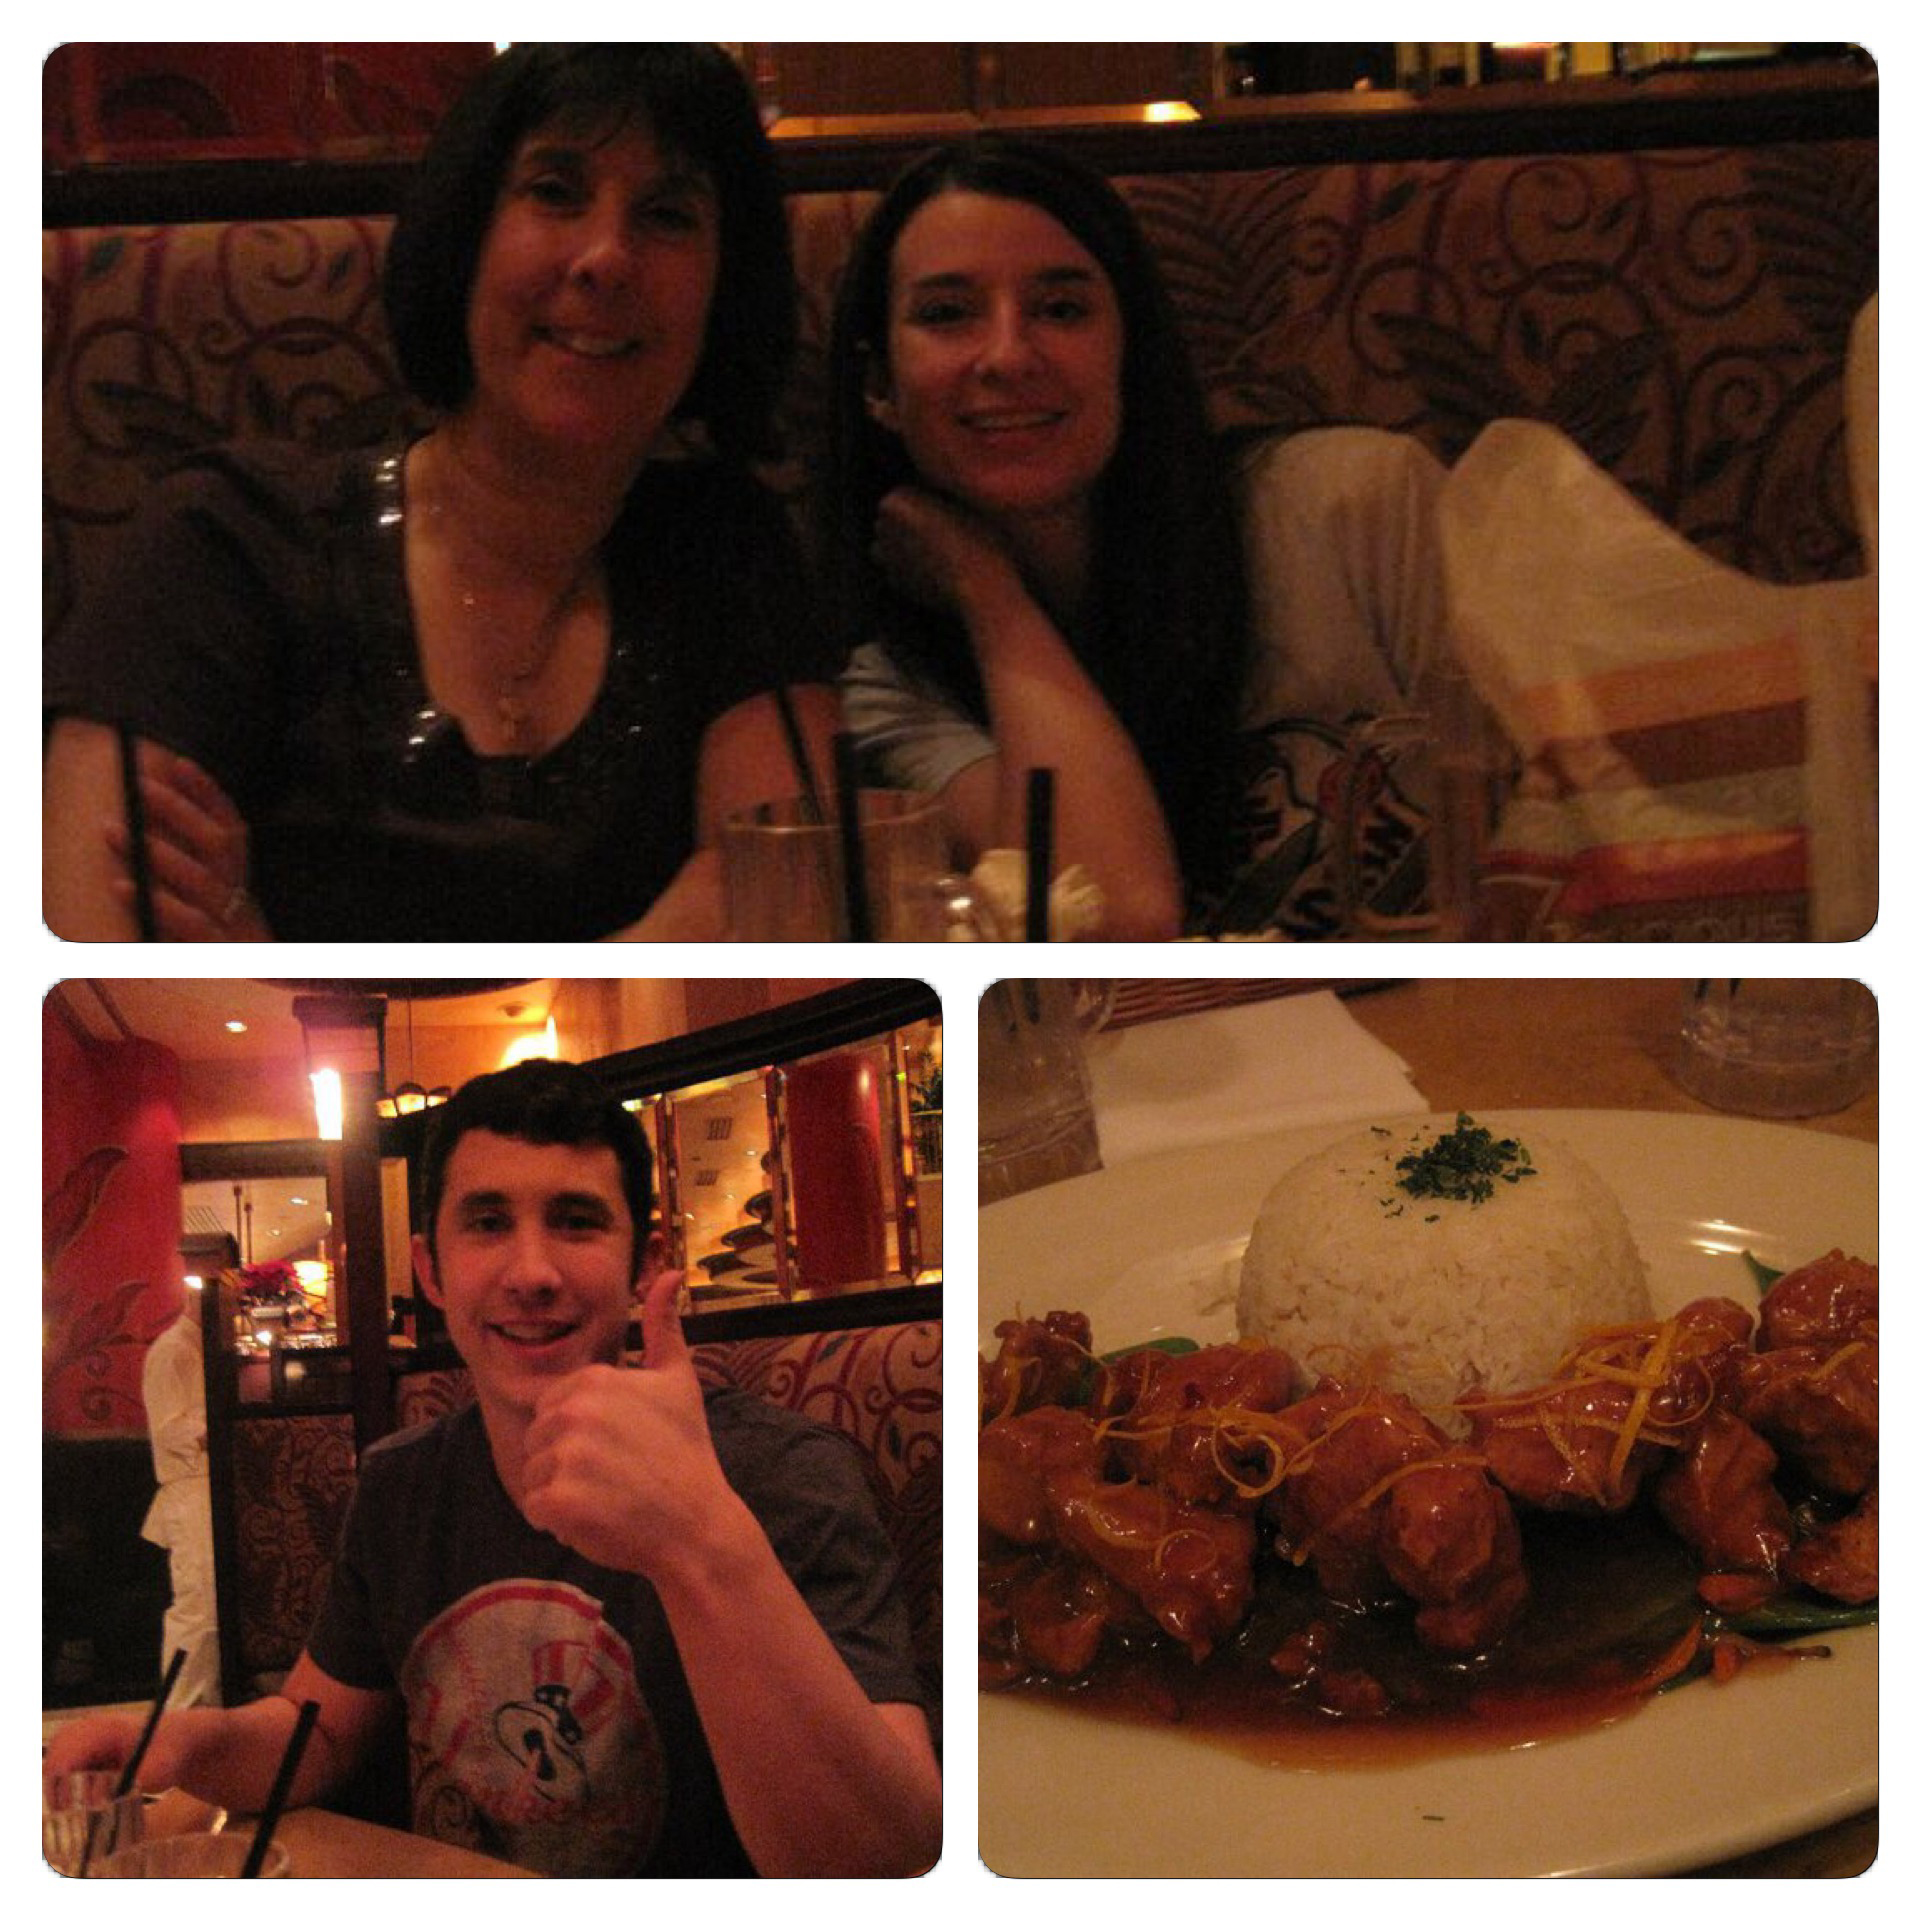 The first time I ate at a Cheesecake Factory was with my family in Las Vegas in December of 2010. The top photo is my mom and sister. The bottom left is my brother. The photo in the bottom right is of the orange chicken I ate as my first ever Cheesecake Factory meal.